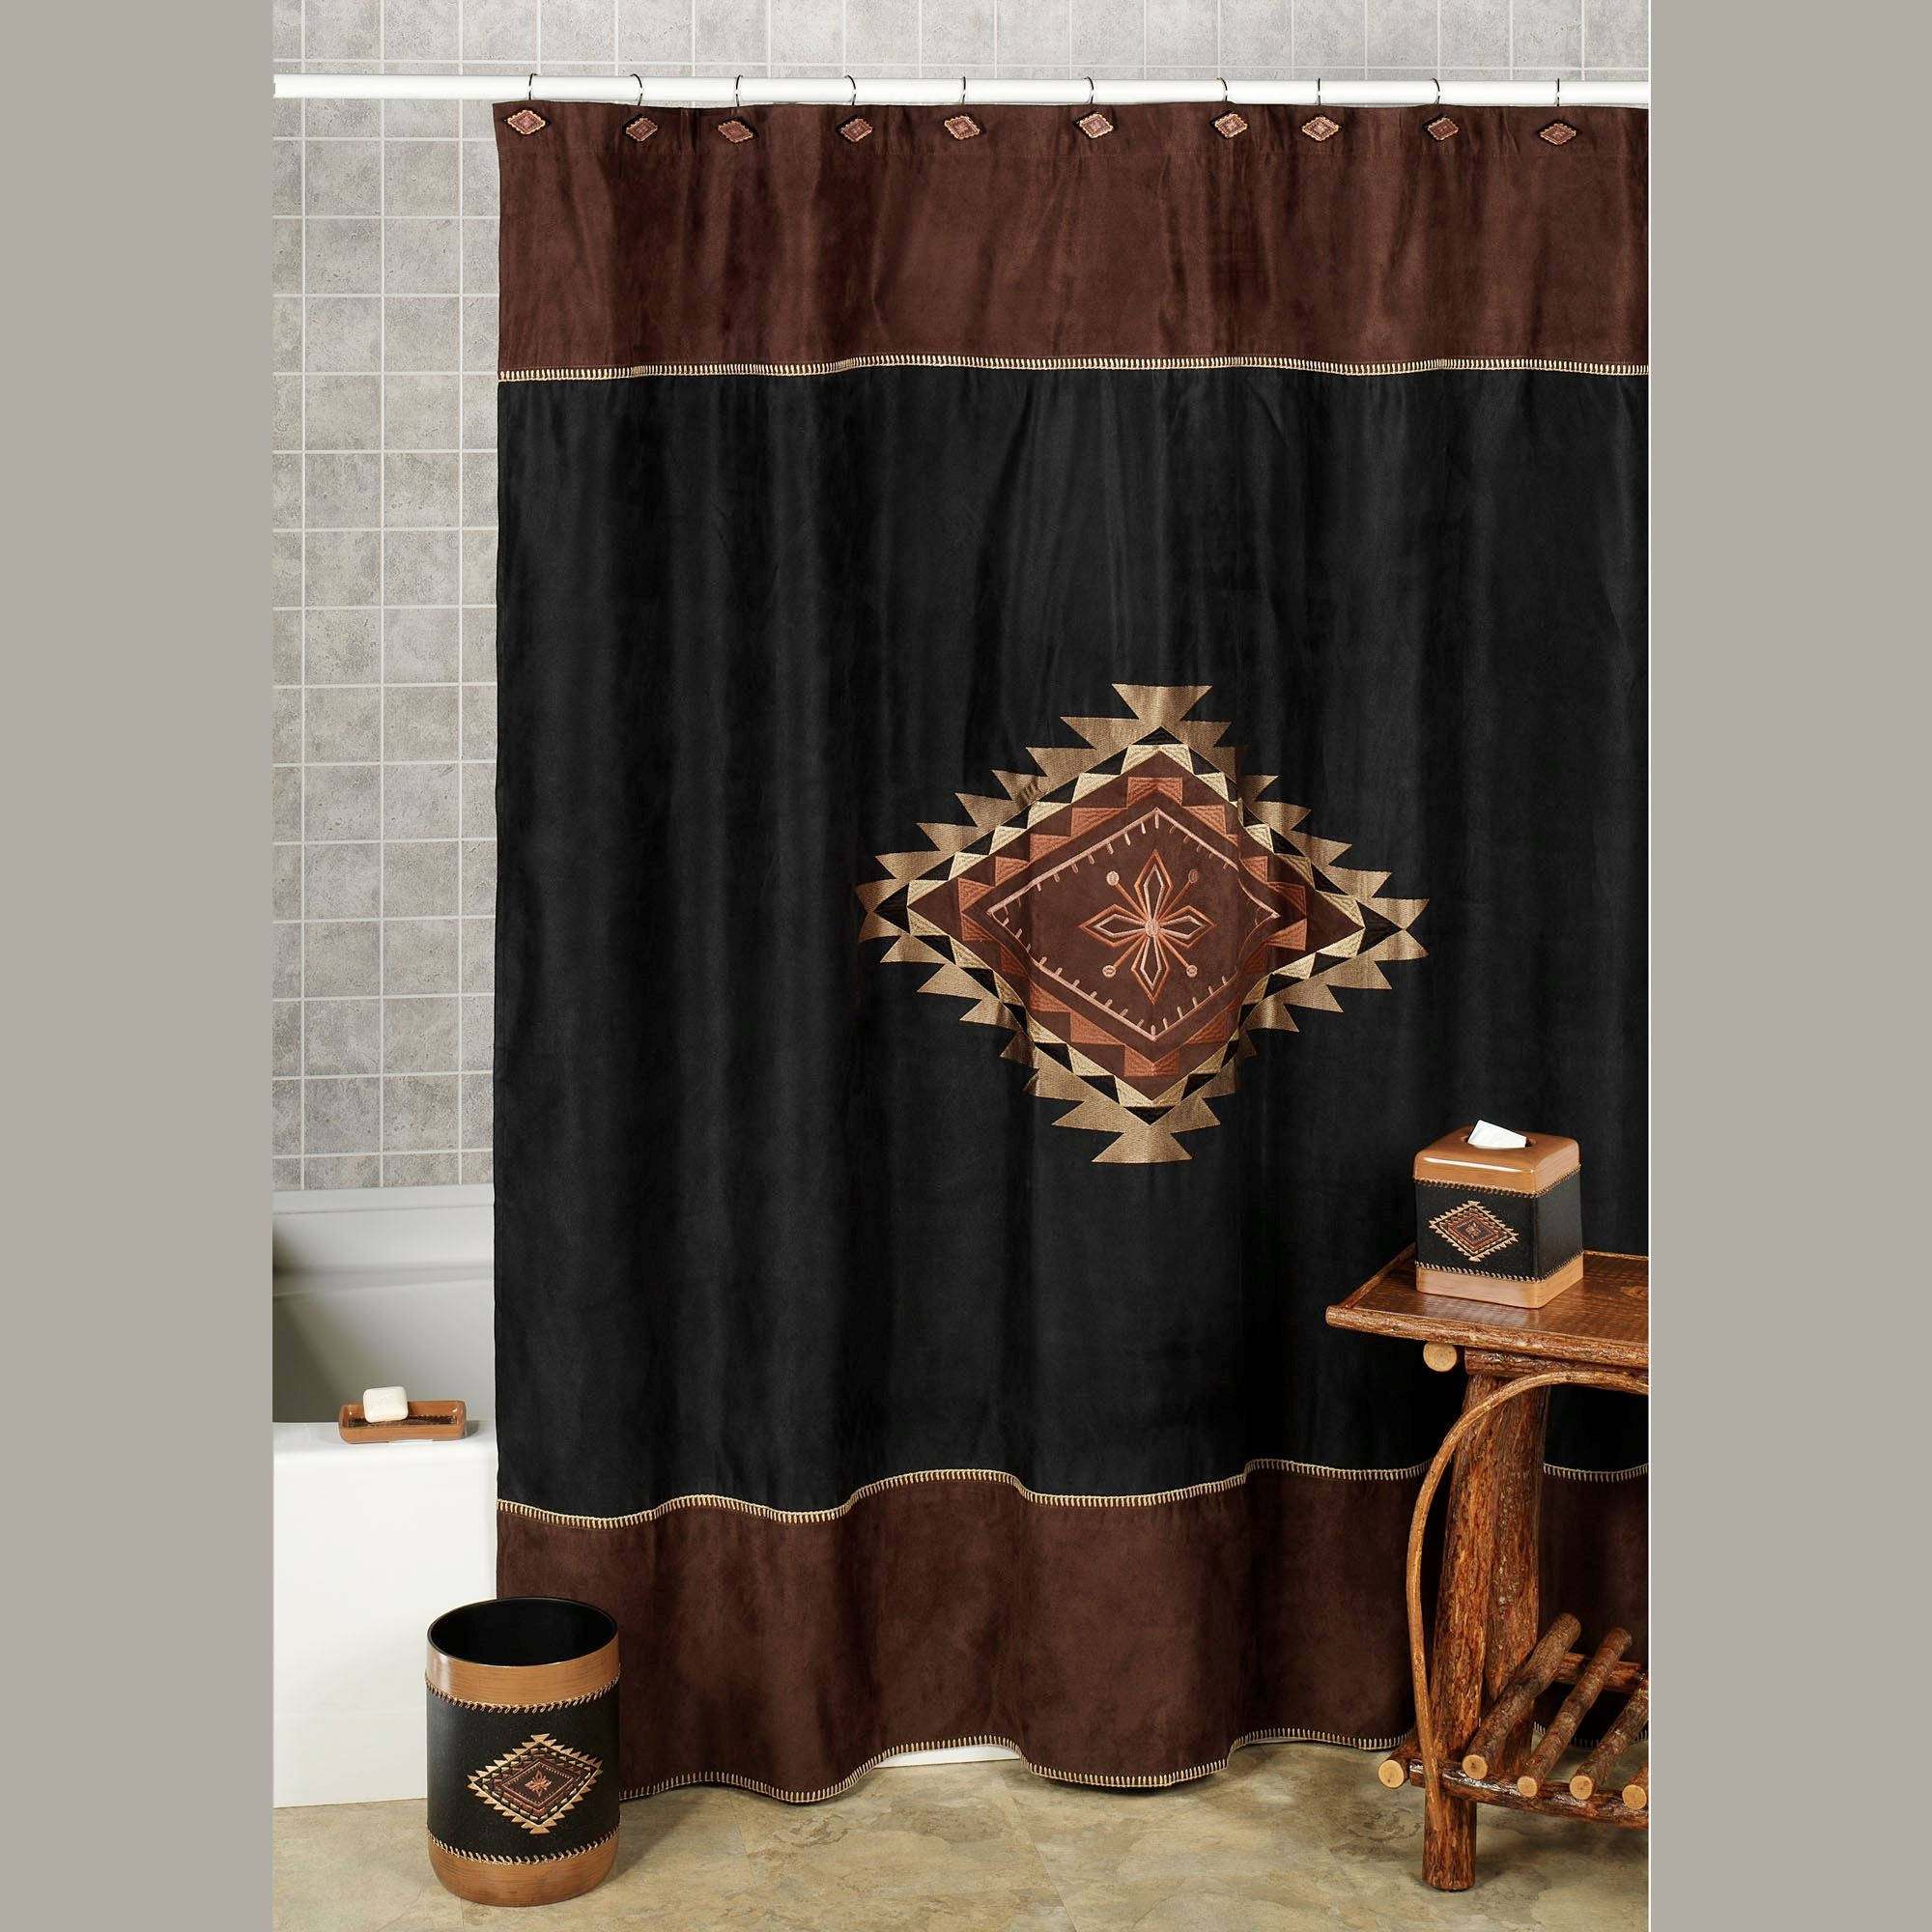 Super Suede Shower Curtain Shower Curtain regarding proportions 2000 X 2000